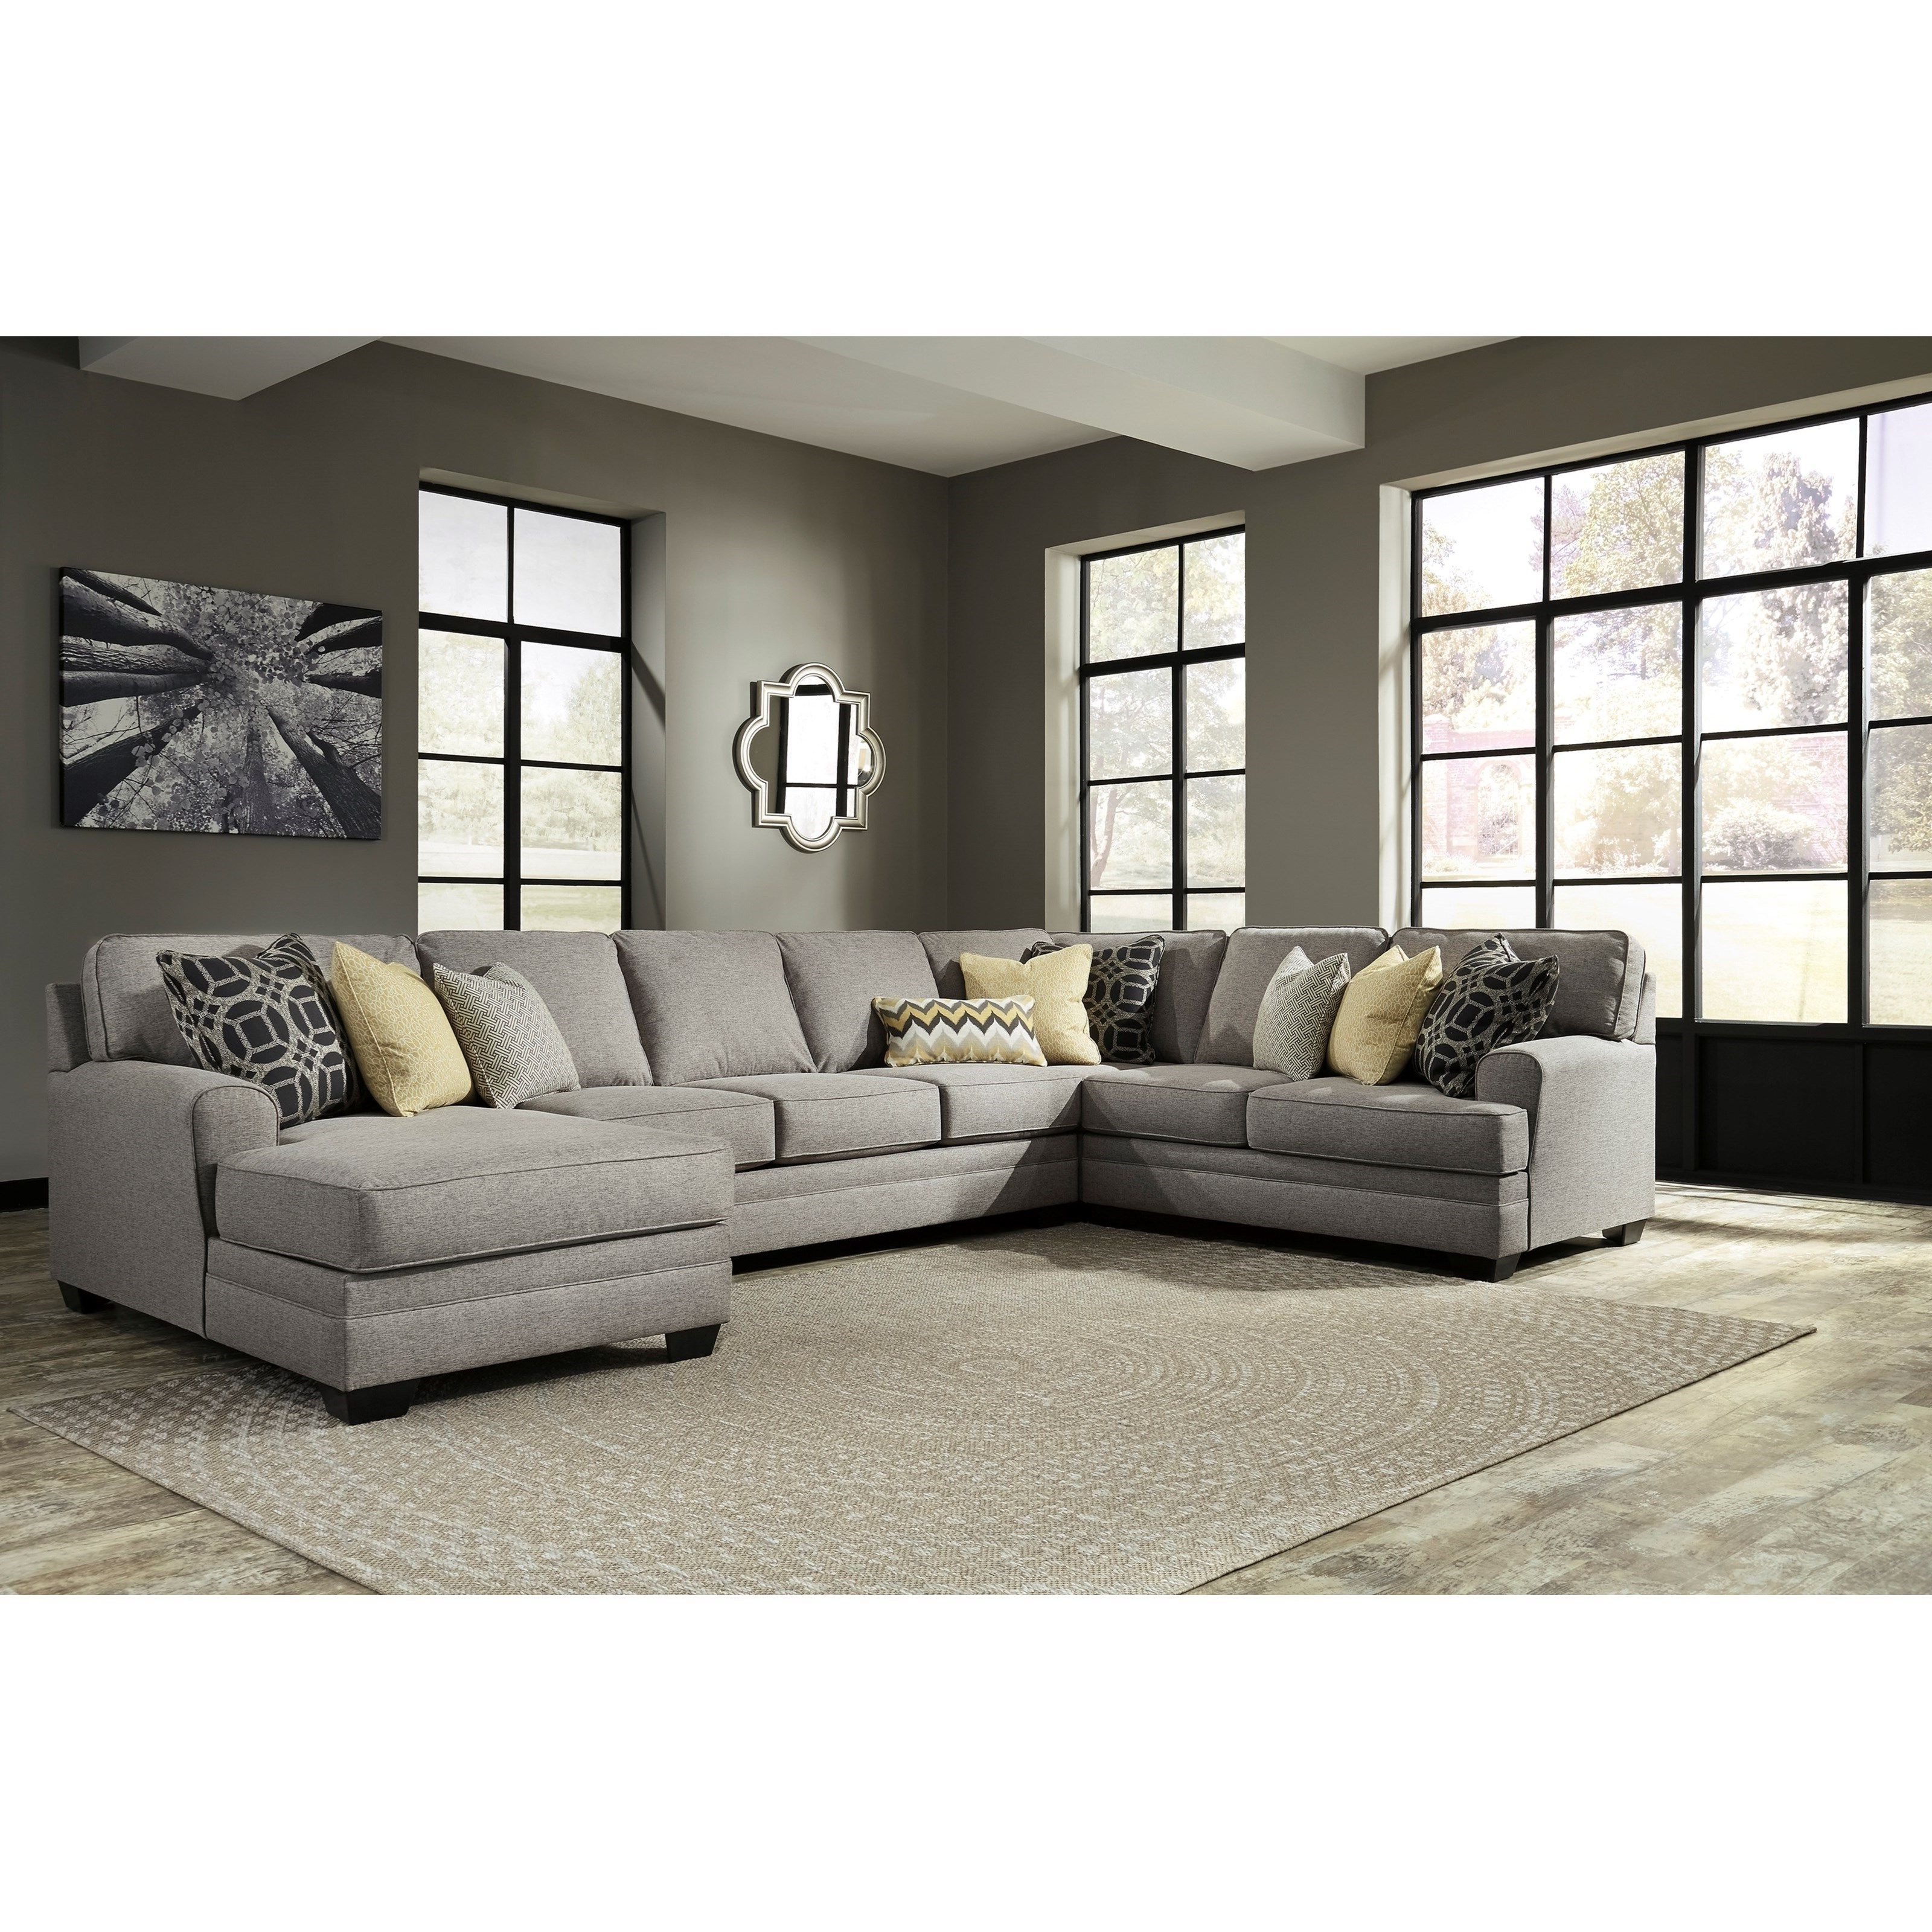 Sofas Regarding Recent Eau Claire Wi Sectional Sofas (View 11 of 20)